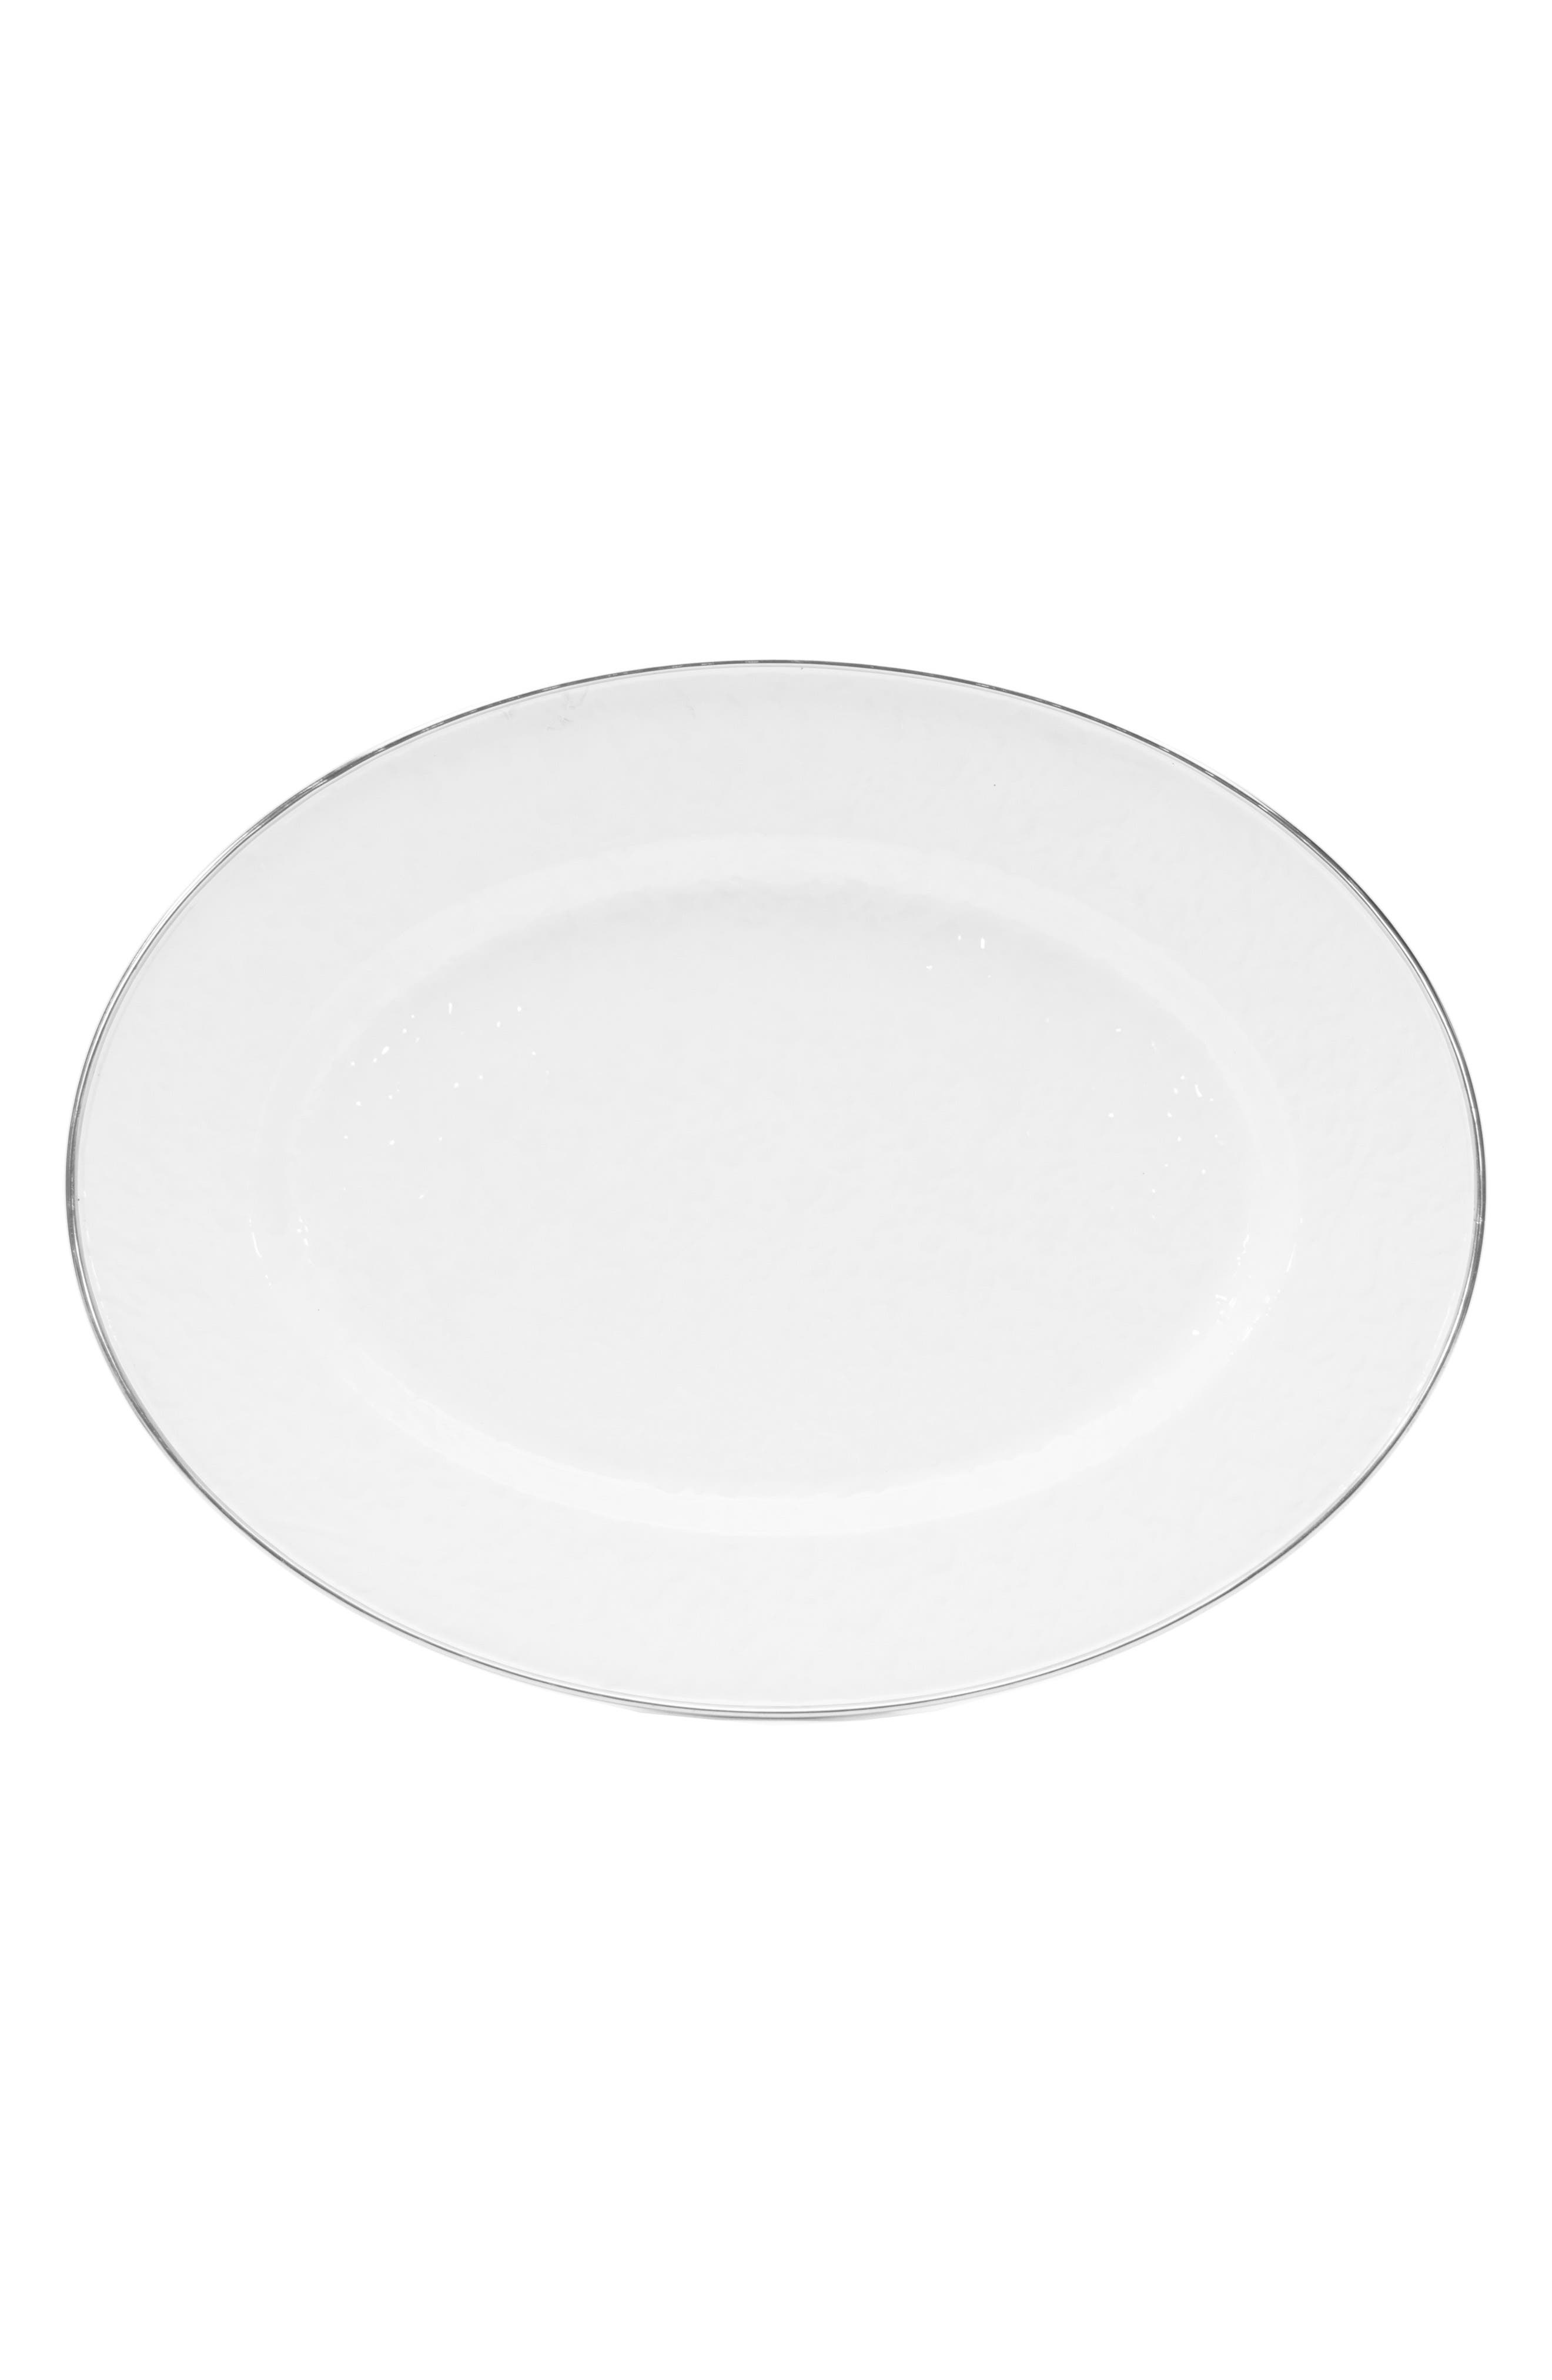 Oval Serving Platter,                             Main thumbnail 1, color,                             SOLID WHITE